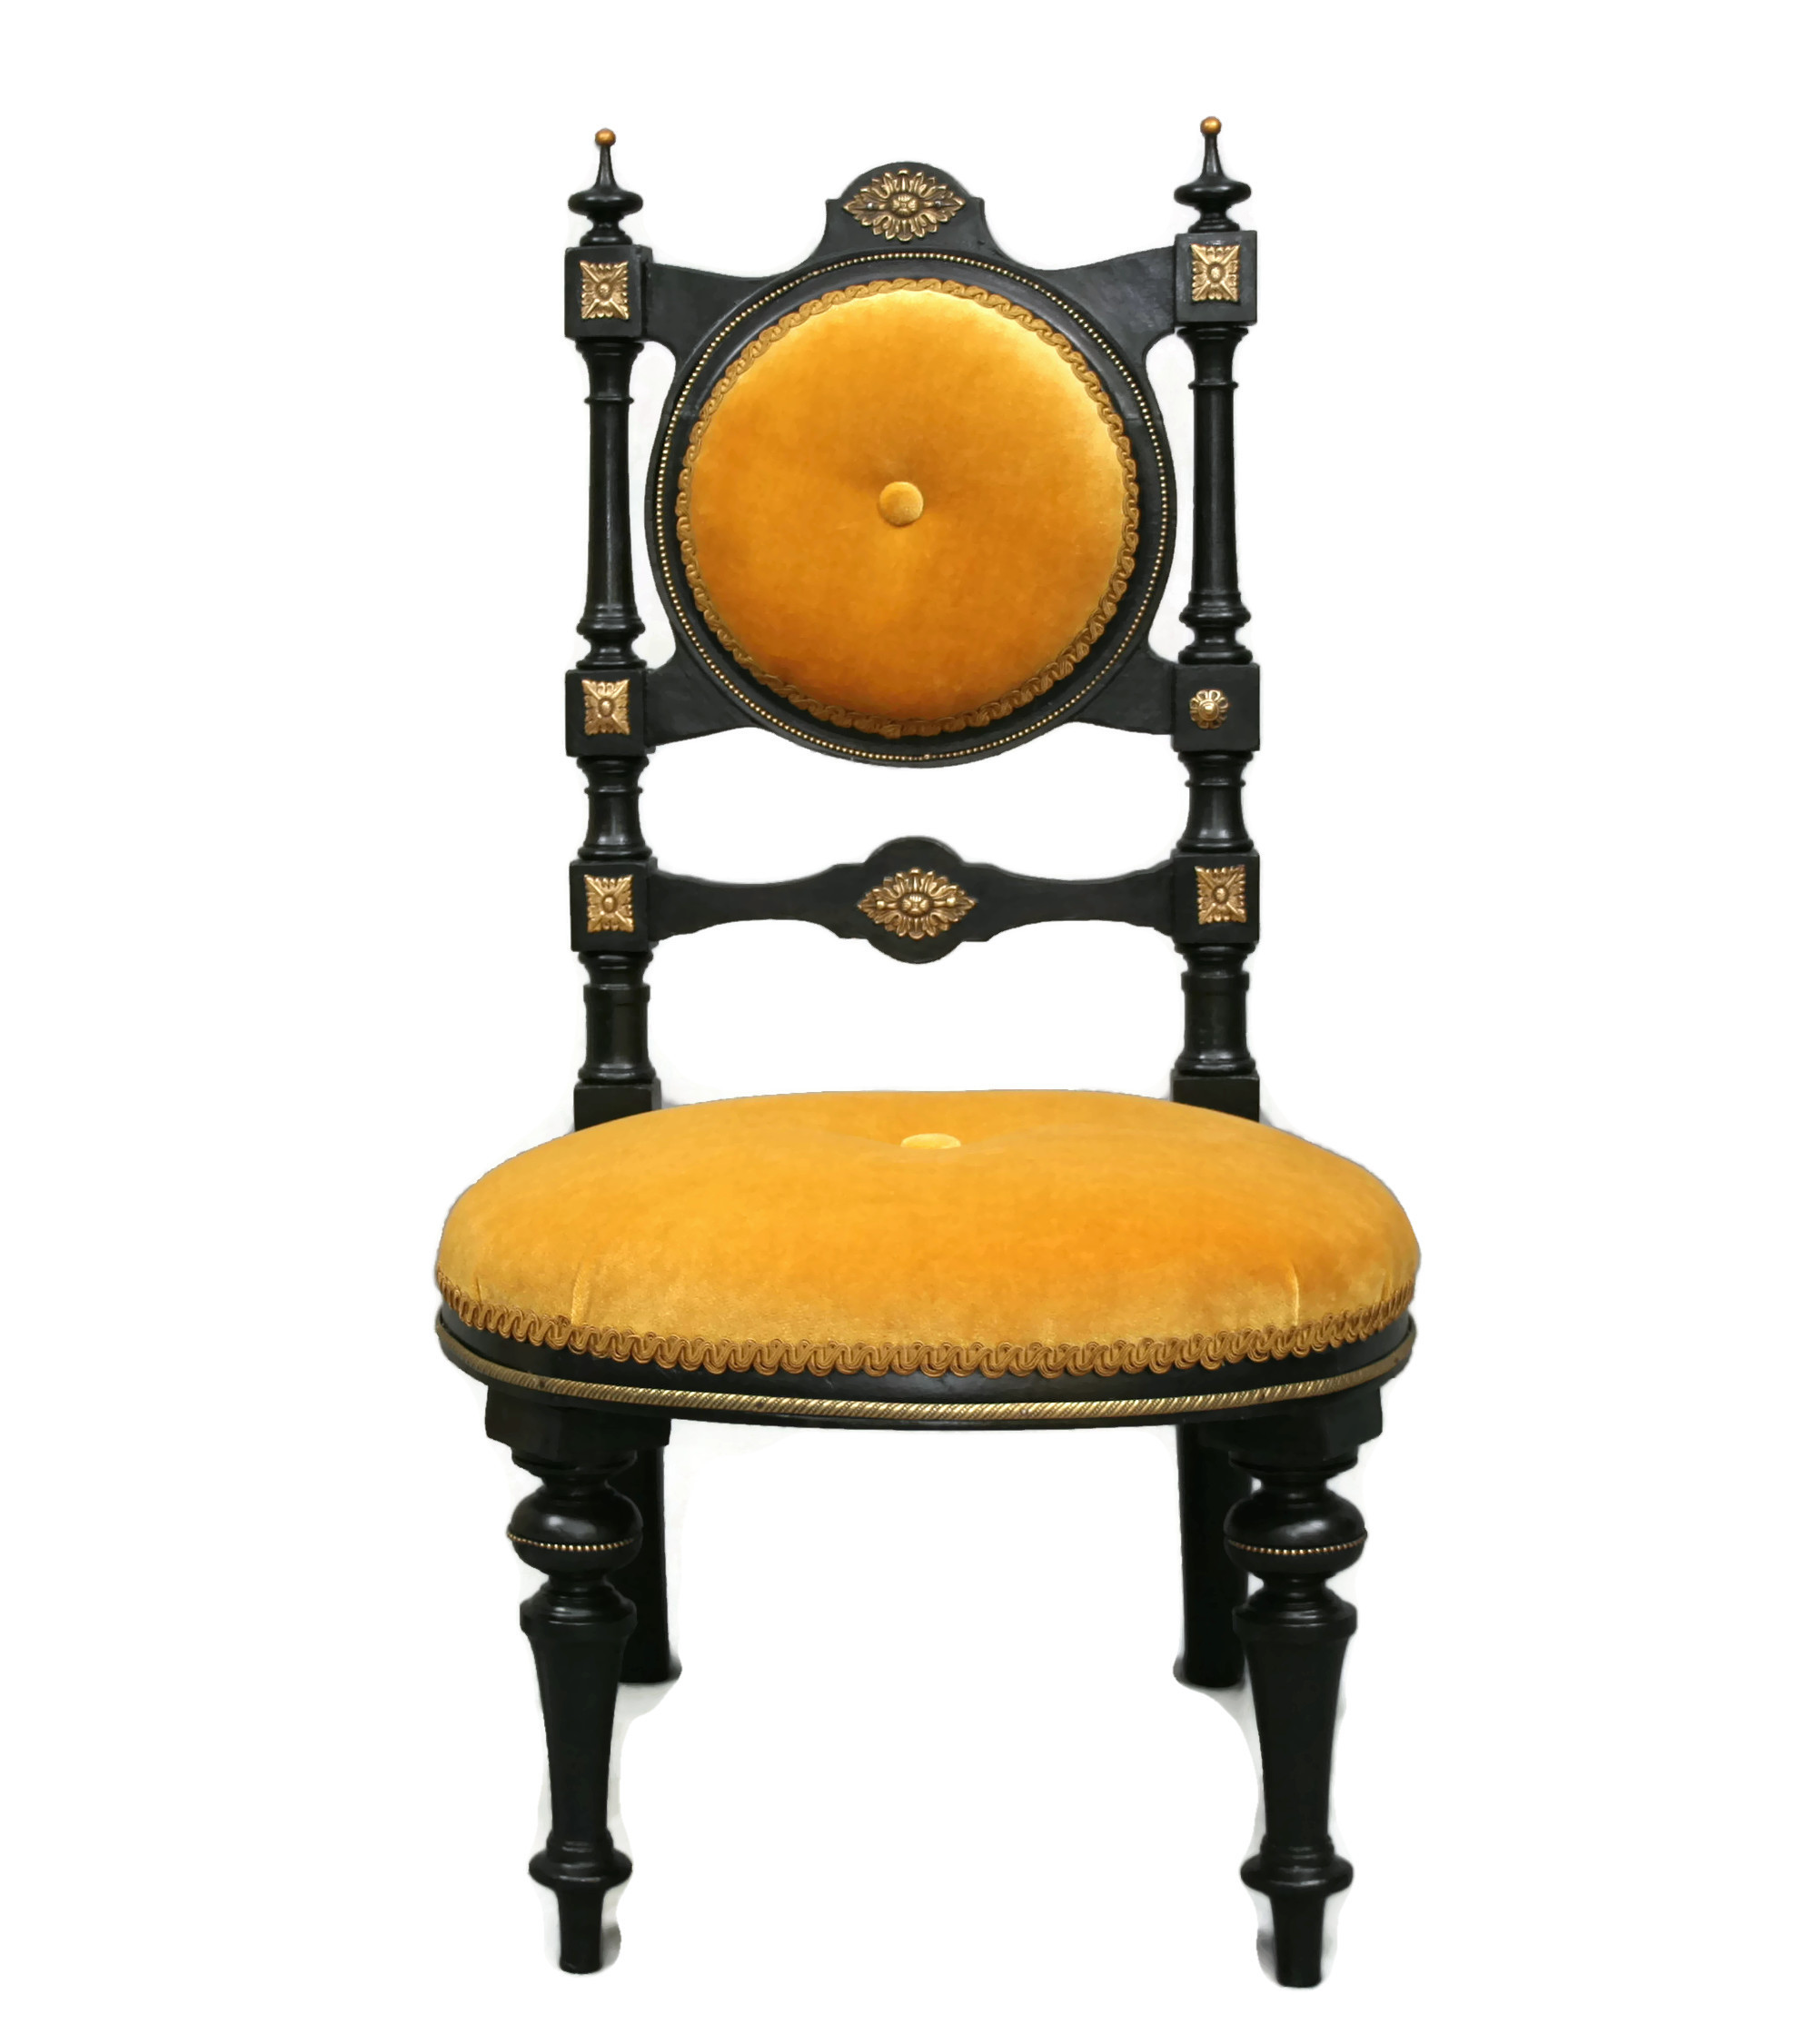 chair j uk antique antiques dating furniture chairs ebay